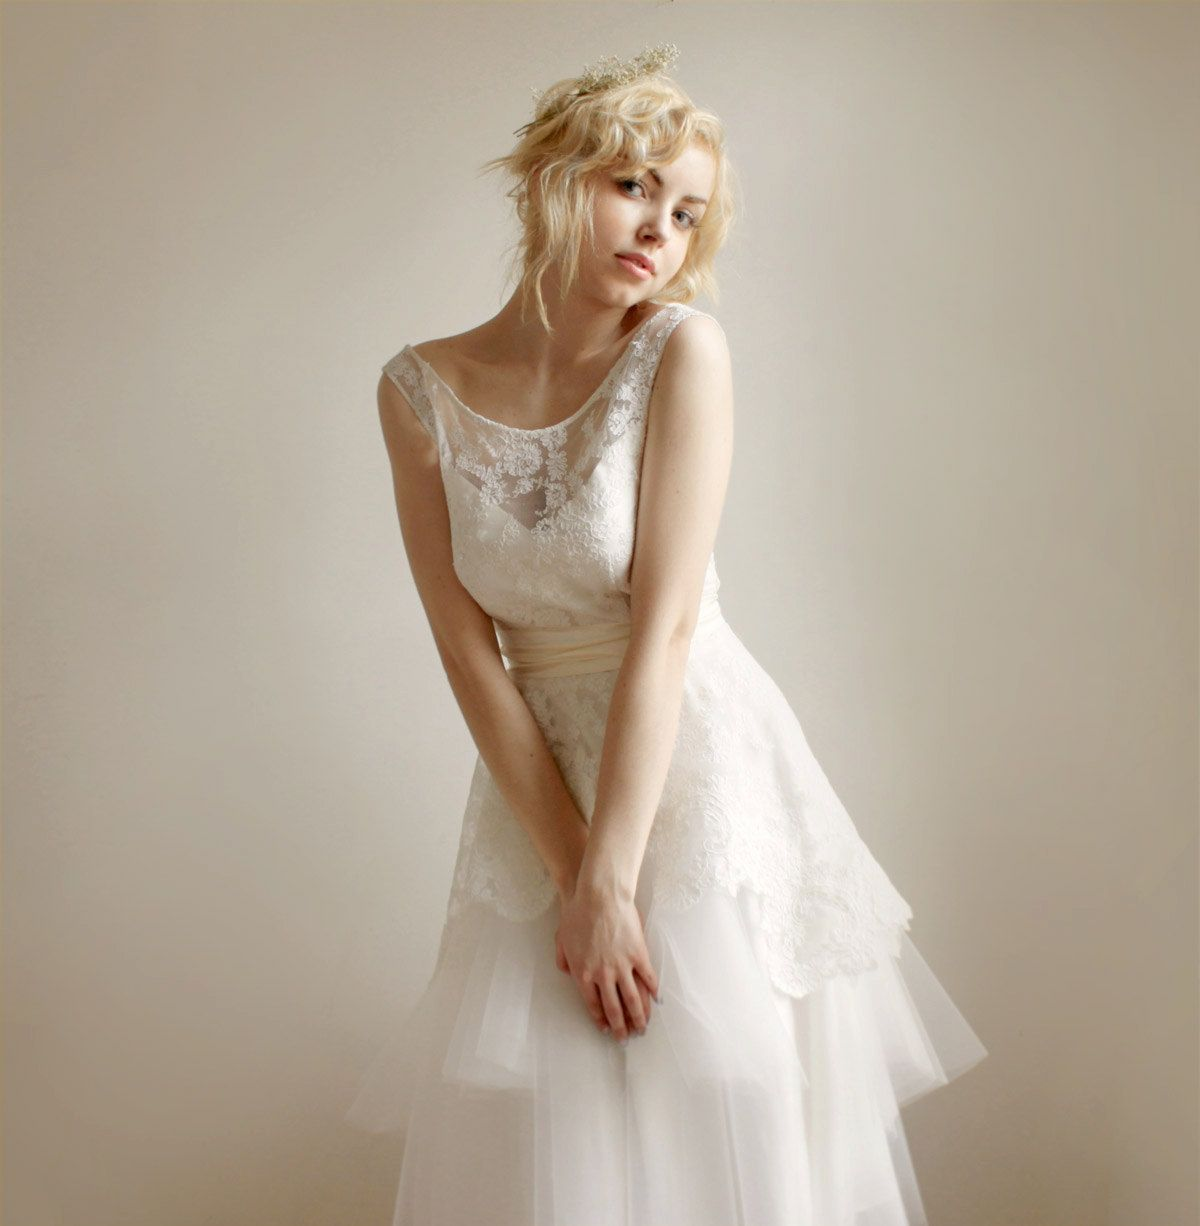 Mathildelace And Tulle Wedding Dress Etsy Exclusive By Leanimal Gorgeous